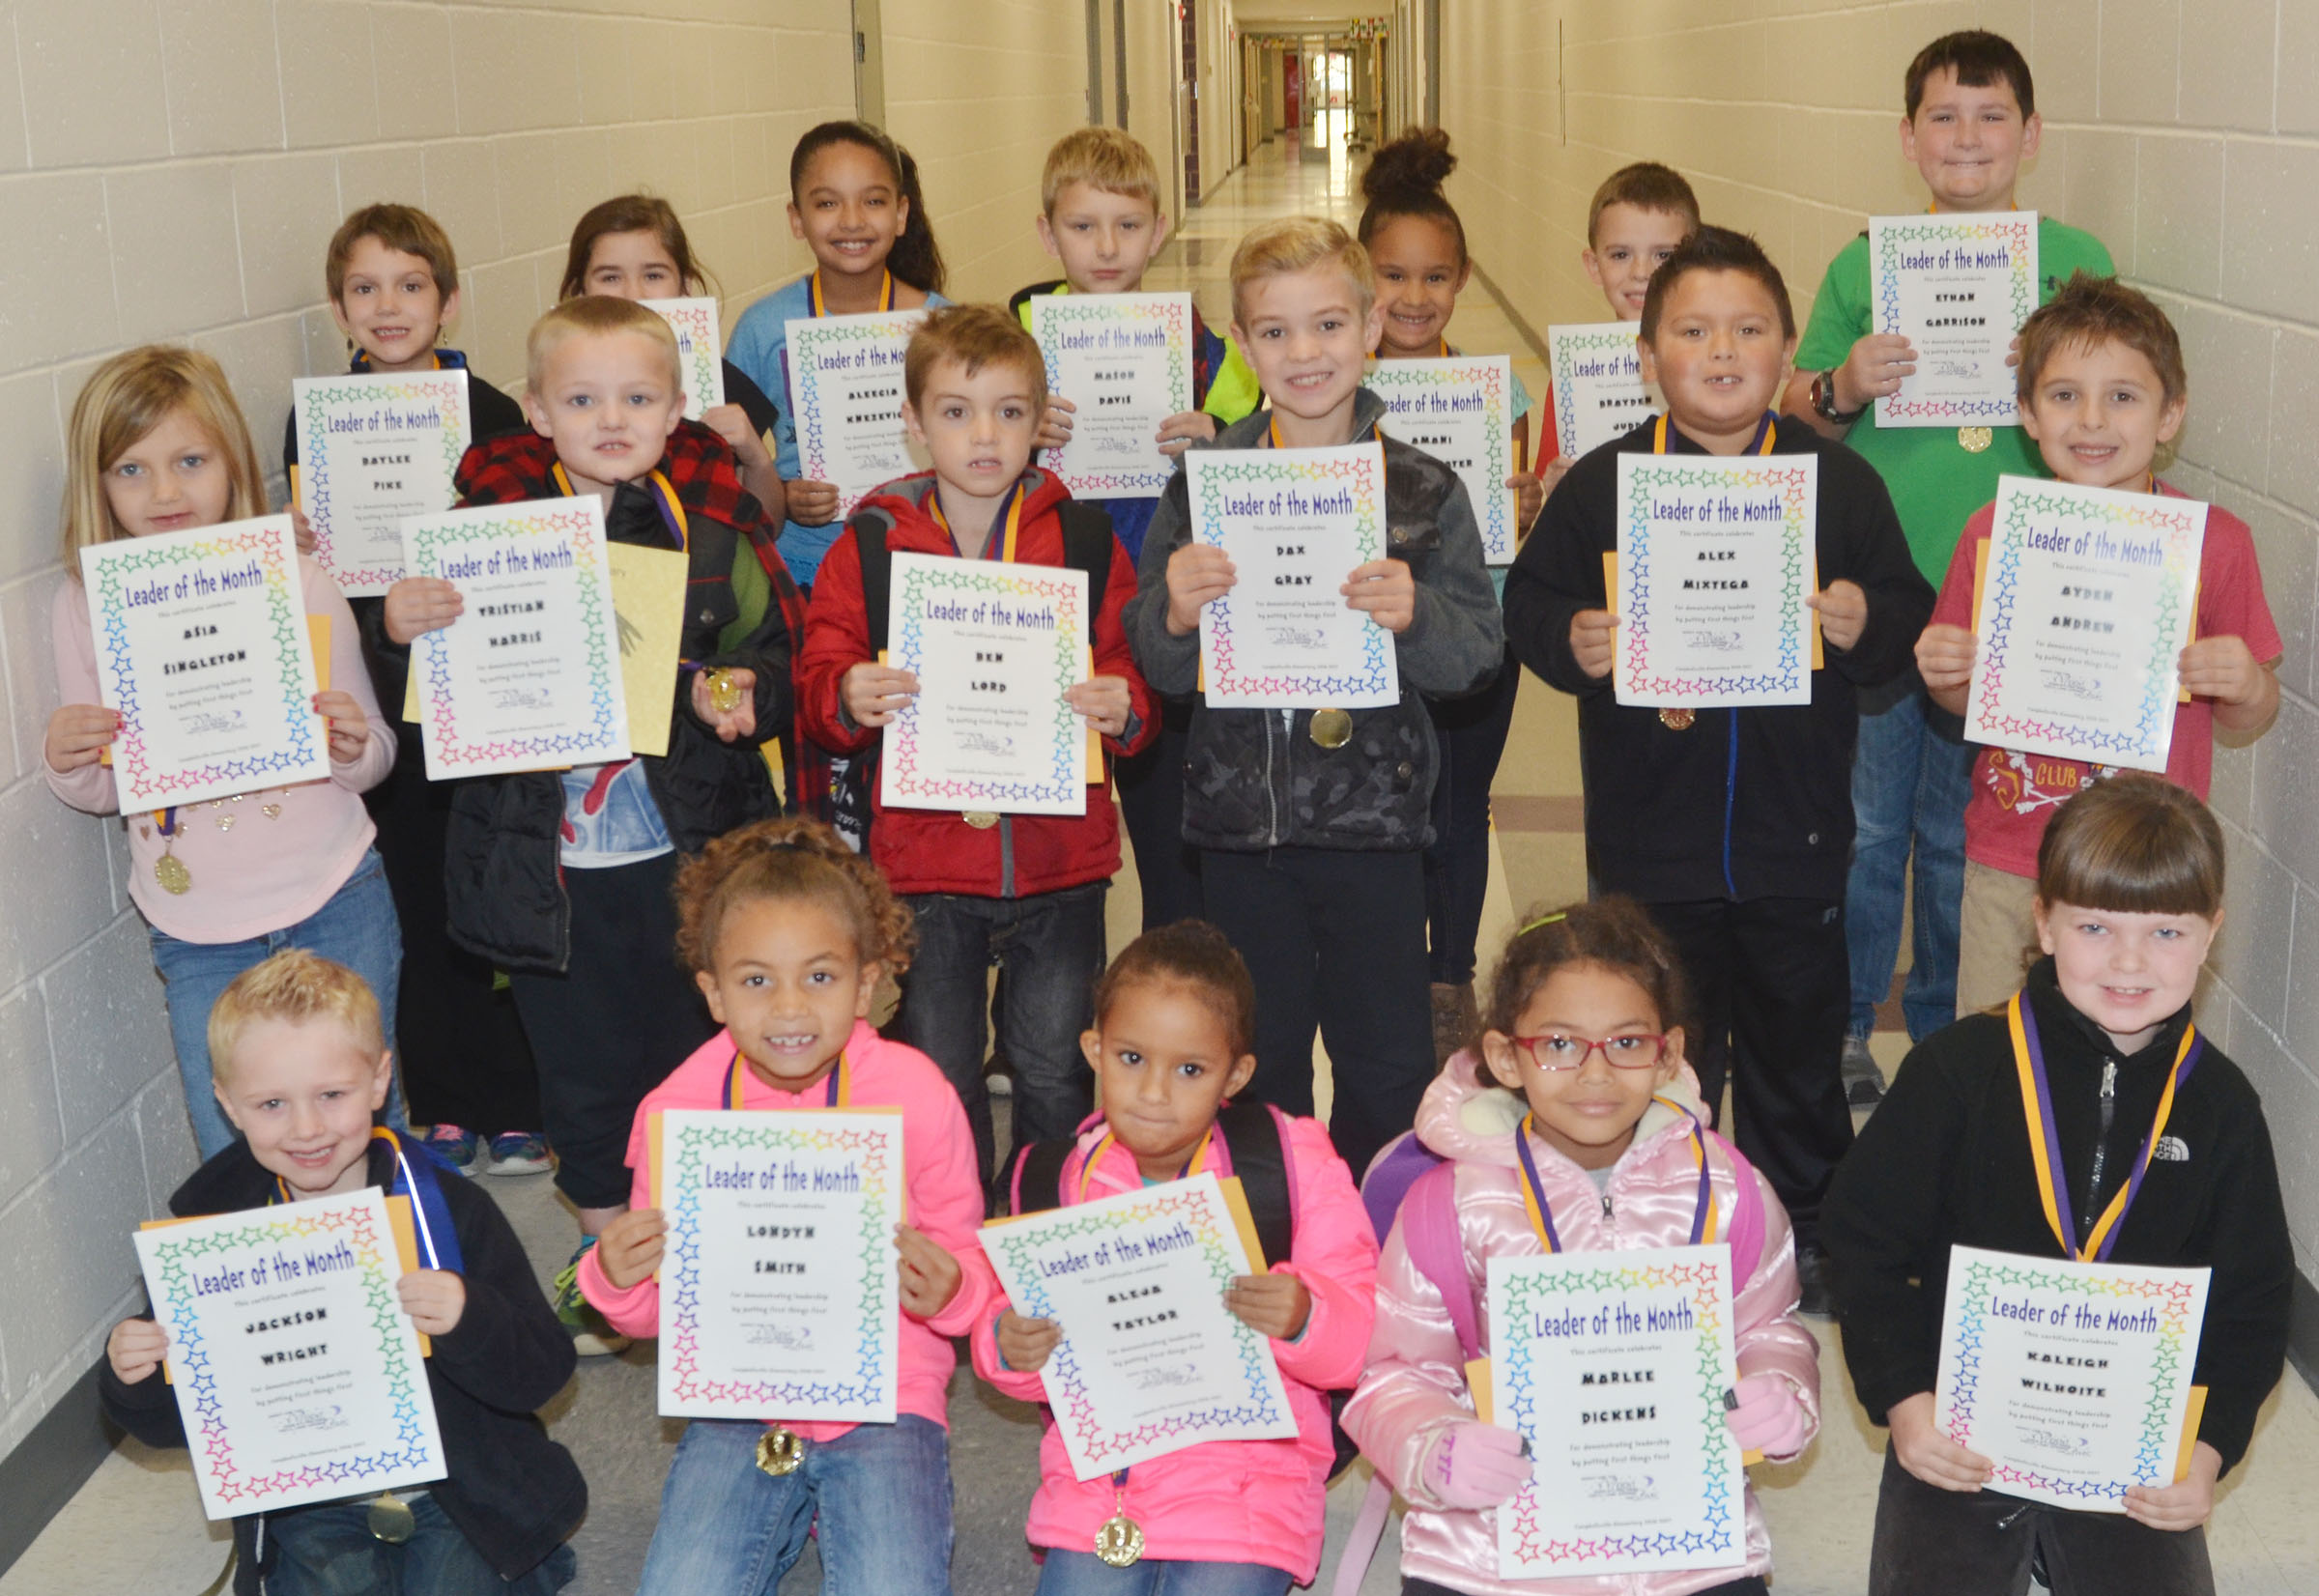 From left, front, are kindergartener Jackson Wright, first-grader Londyn Smith, kindergarteners Aleja Taylor and Marlee Dickens and second-grader Kaleigh Wilhoite. Second row, first-grader Asia Singleton, kindergartener Tristian Harris, first-graders Ben Lord, Dax Gray and Alex Mixtega and kindergartener Ayden Andrew. Back, second-grader Baylee Pike, third-graders Alexis Wolford and Aleecia Knezevic, second-grader Mason Davis, first-grader Amani Bridgewater and third-graders Brayden Judd and Ethan Garrison. Not pictured are second-graders Rajon Taylor and Alex Wilson.